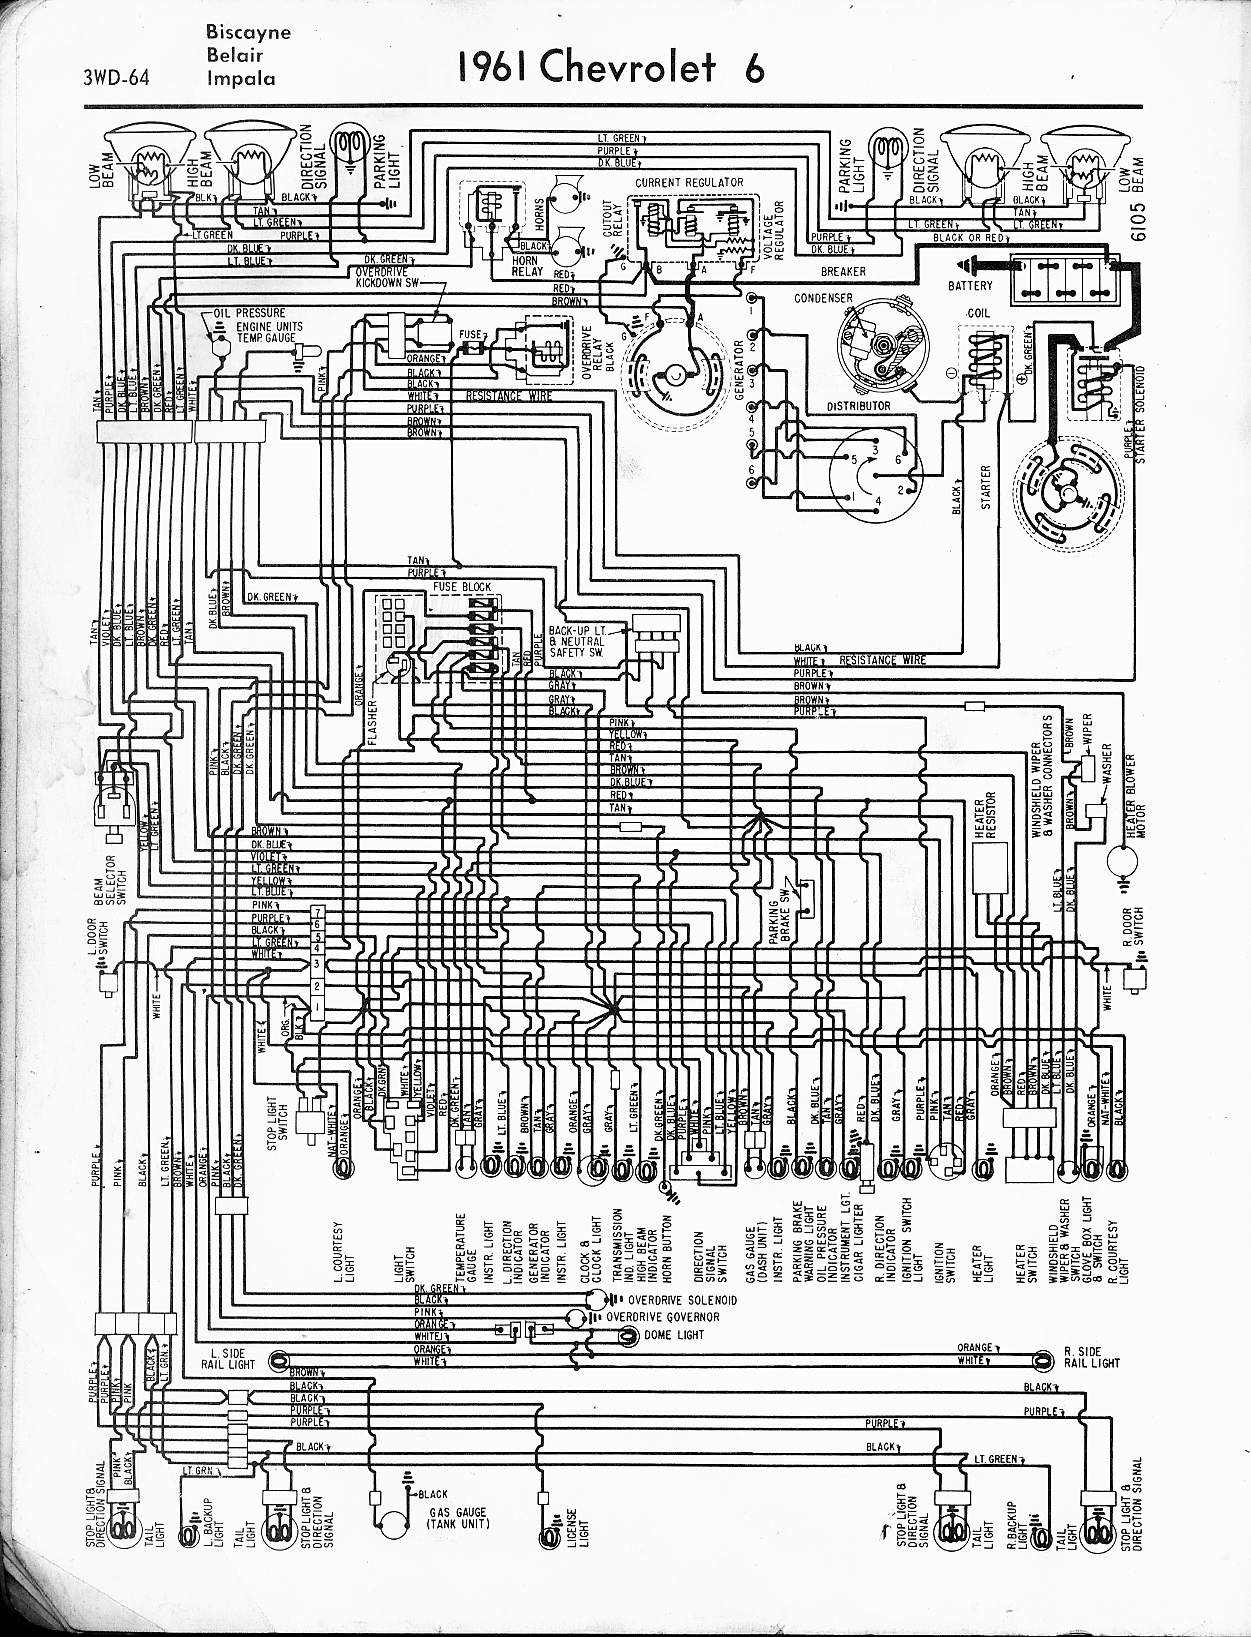 1962 gm windshield wiper wiring diagram 6 18 sg dbd de \u20221962 impala wiper motor wiring diagram wiring diagram rh 22 jesterzone eu gm wiper motor wiring